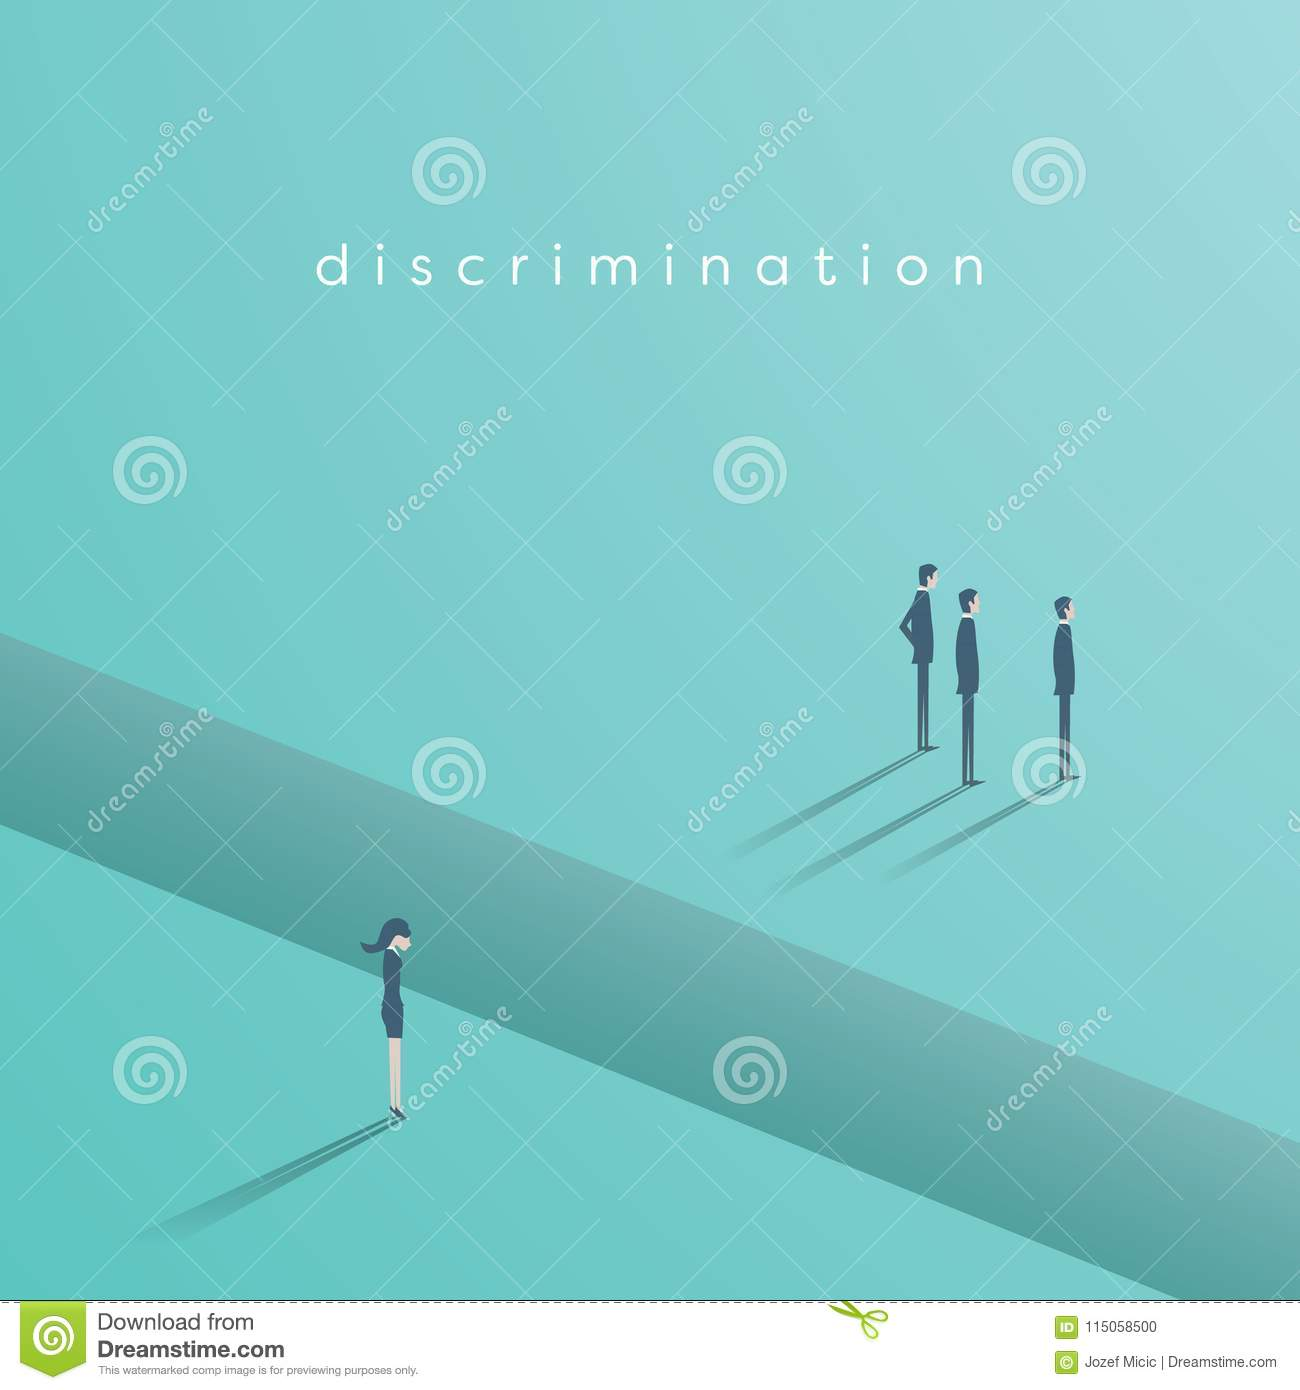 Gender discrimination in business vector concept with businesswoman and businessmen separated by gap. Sex inequality